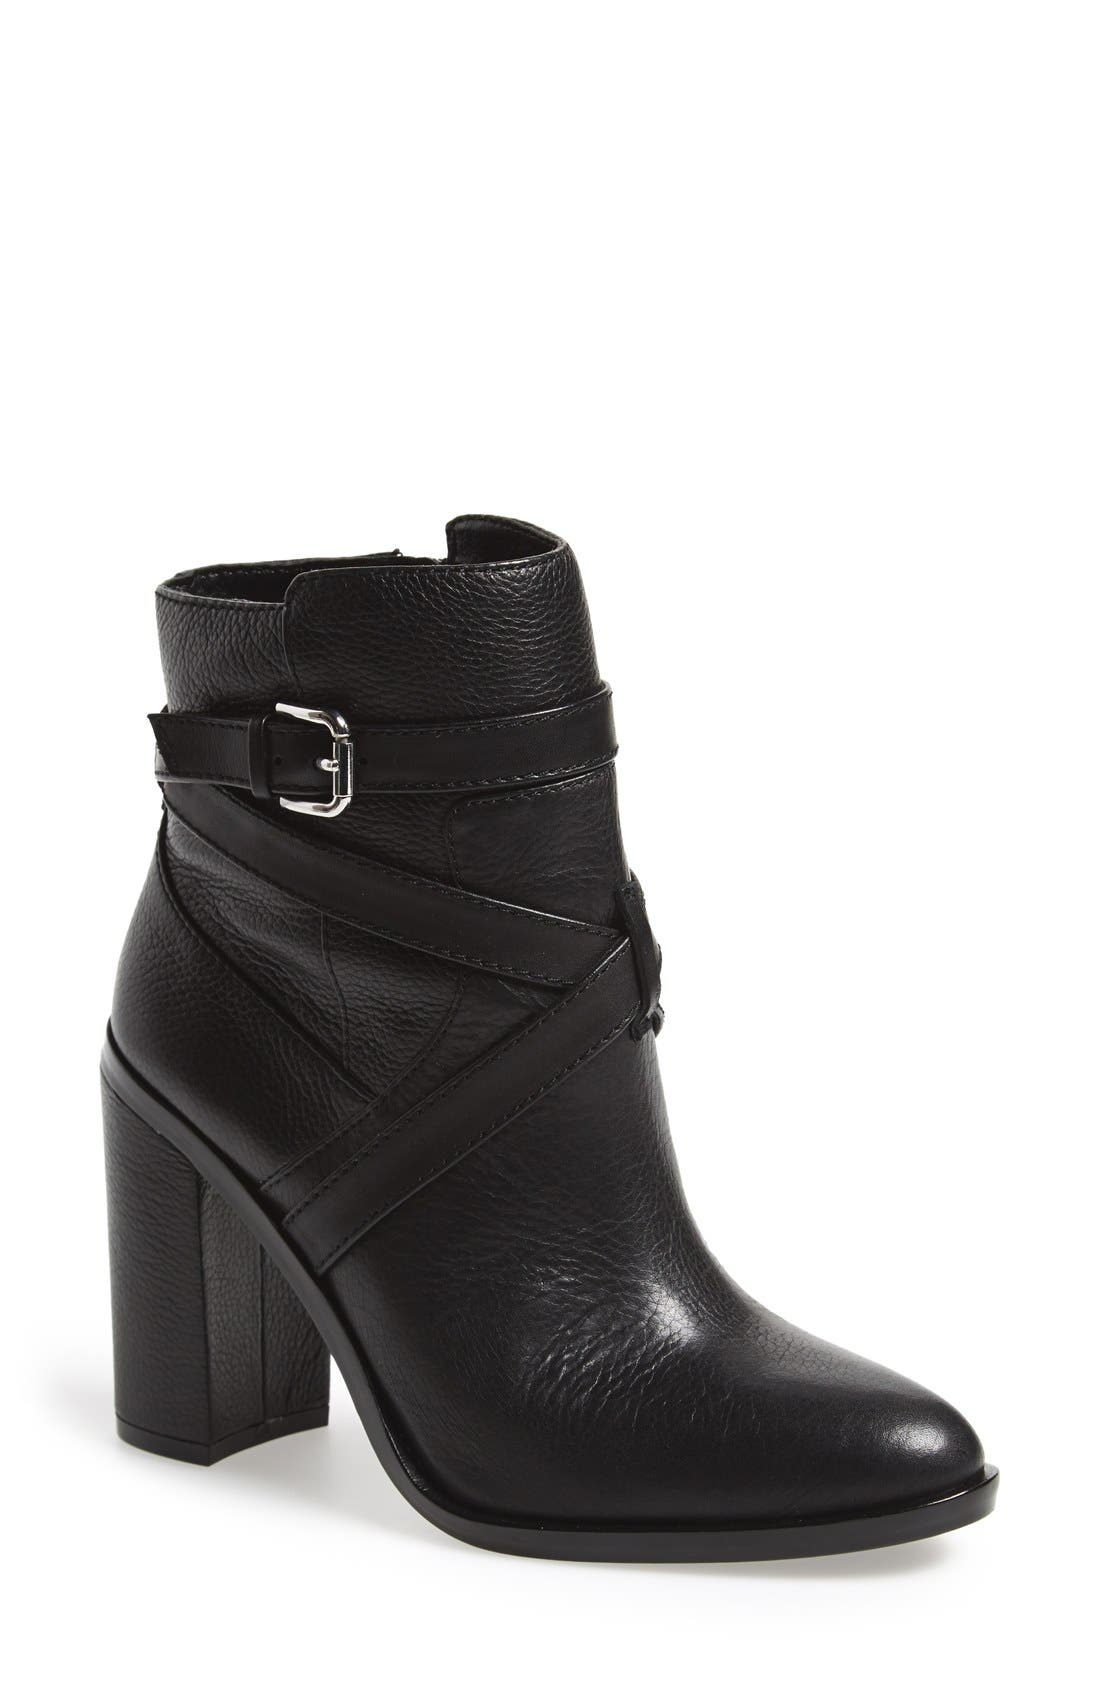 VINCE CAMUTO, 'Gravell' Belted Boot, Main thumbnail 1, color, 001